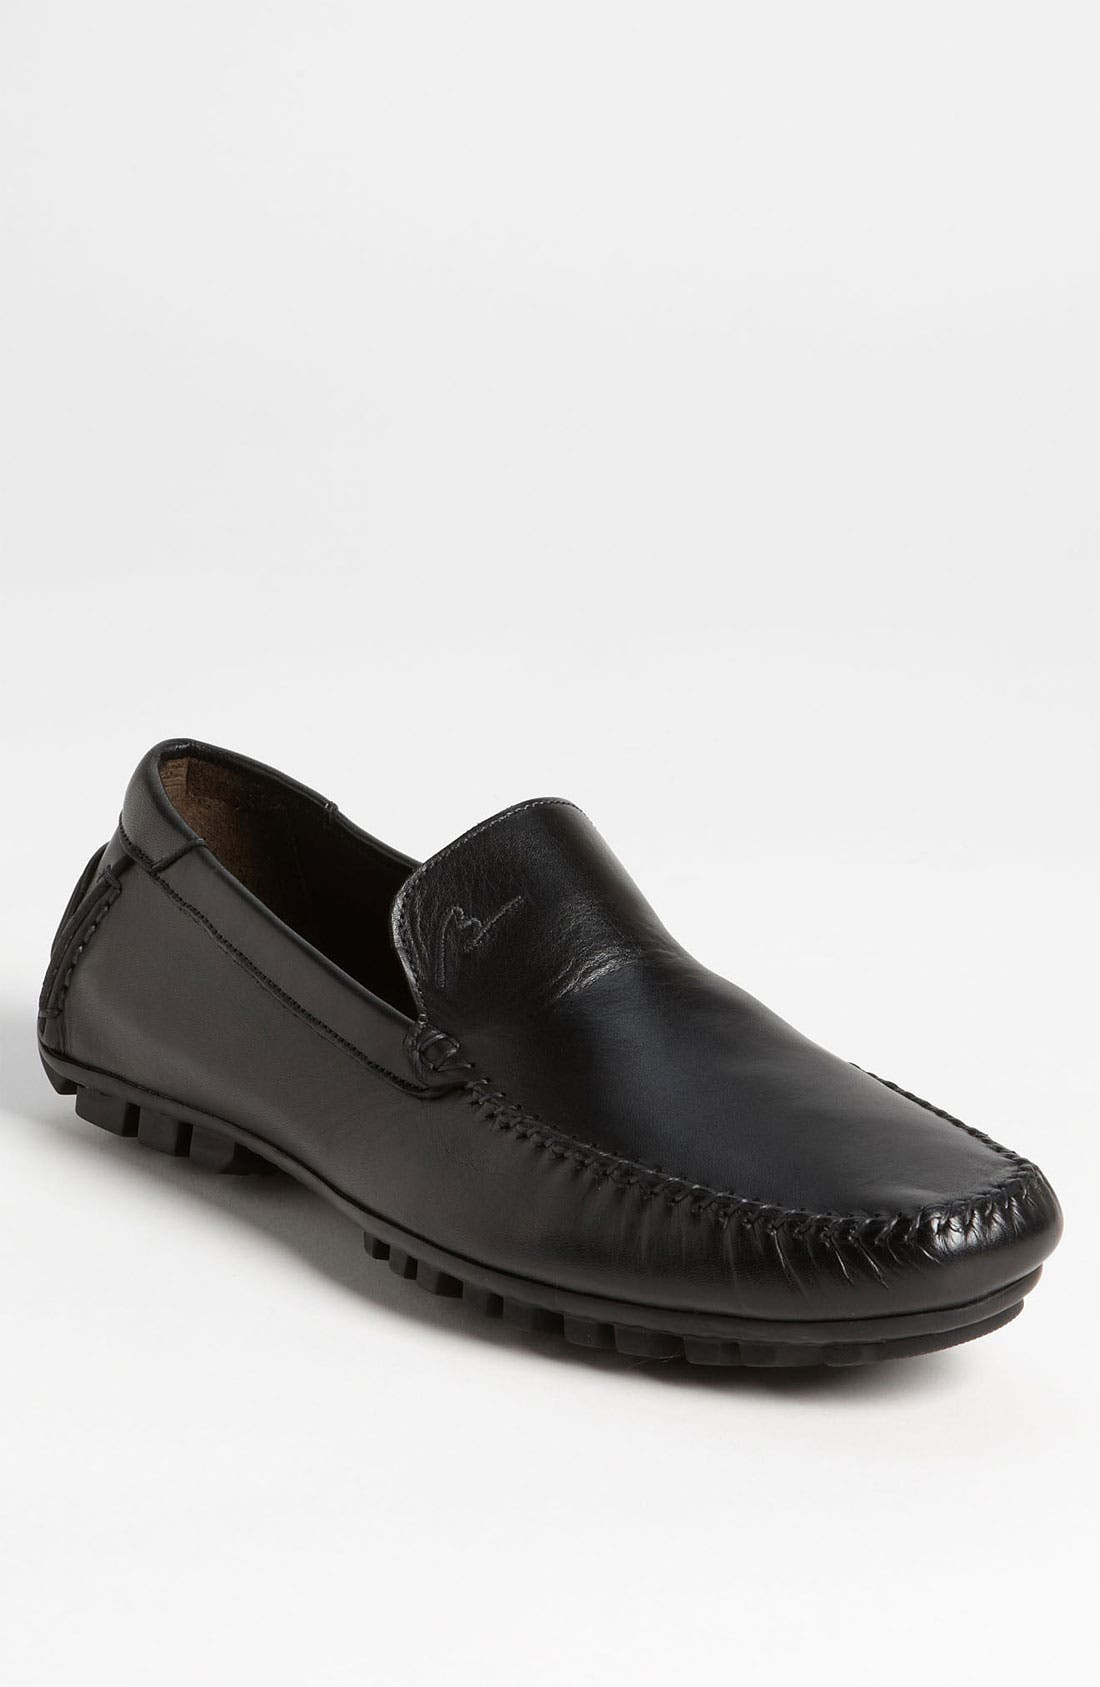 Alternate Image 1 Selected - Bacco Bucci 'Enrico' Driving Shoe (Men)